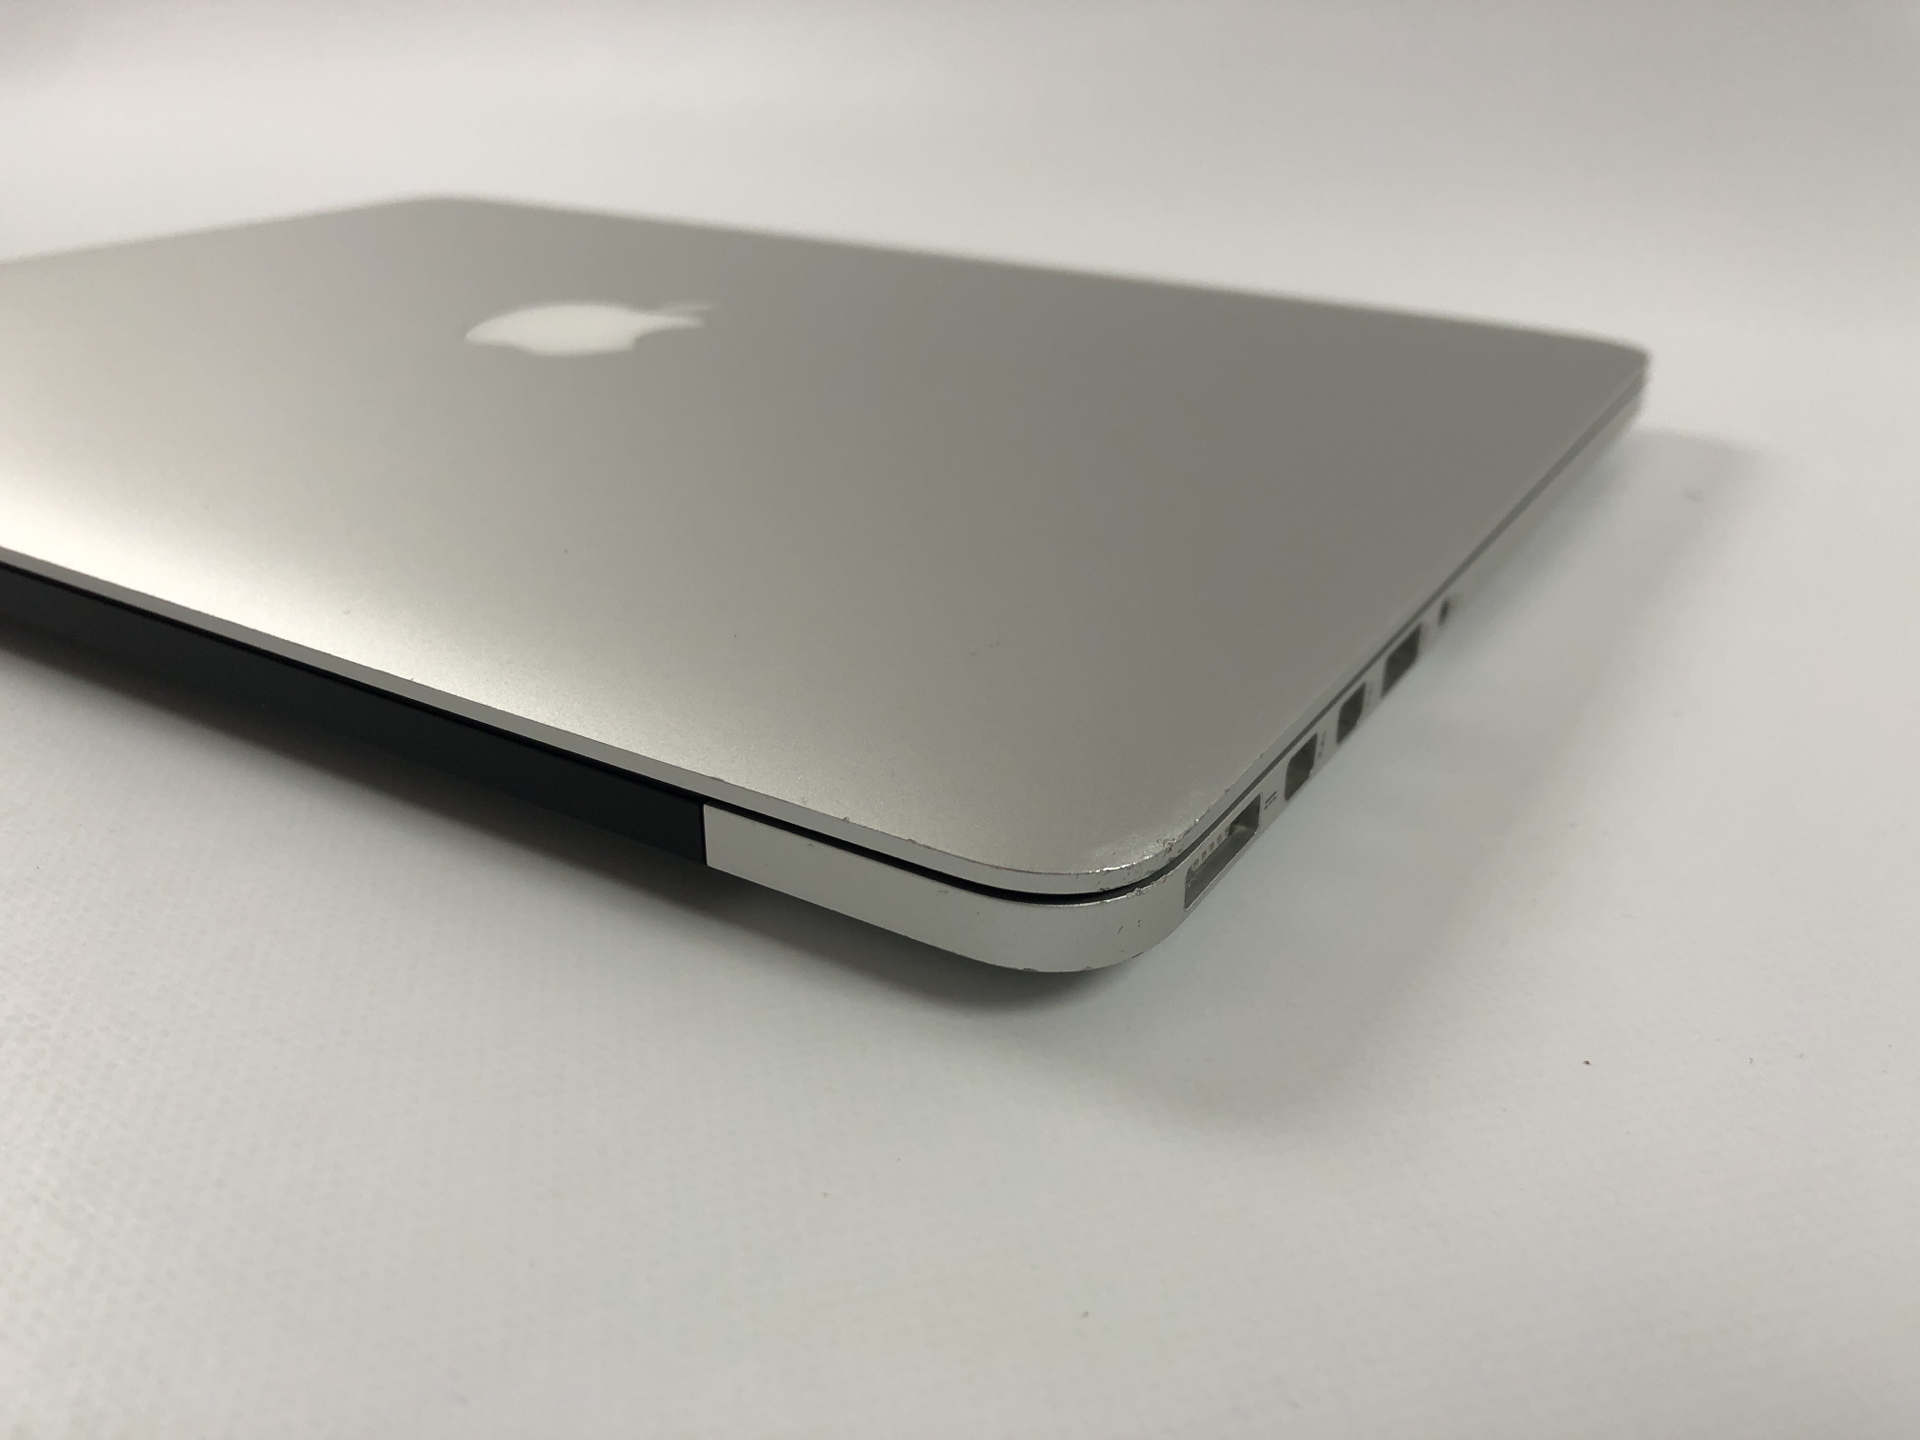 "MacBook Pro Retina 13"" Early 2015 (Intel Core i5 2.7 GHz 8 GB RAM 256 GB SSD), Intel Core i5 2.7 GHz, 8 GB RAM, 256 GB SSD, Kuva 4"